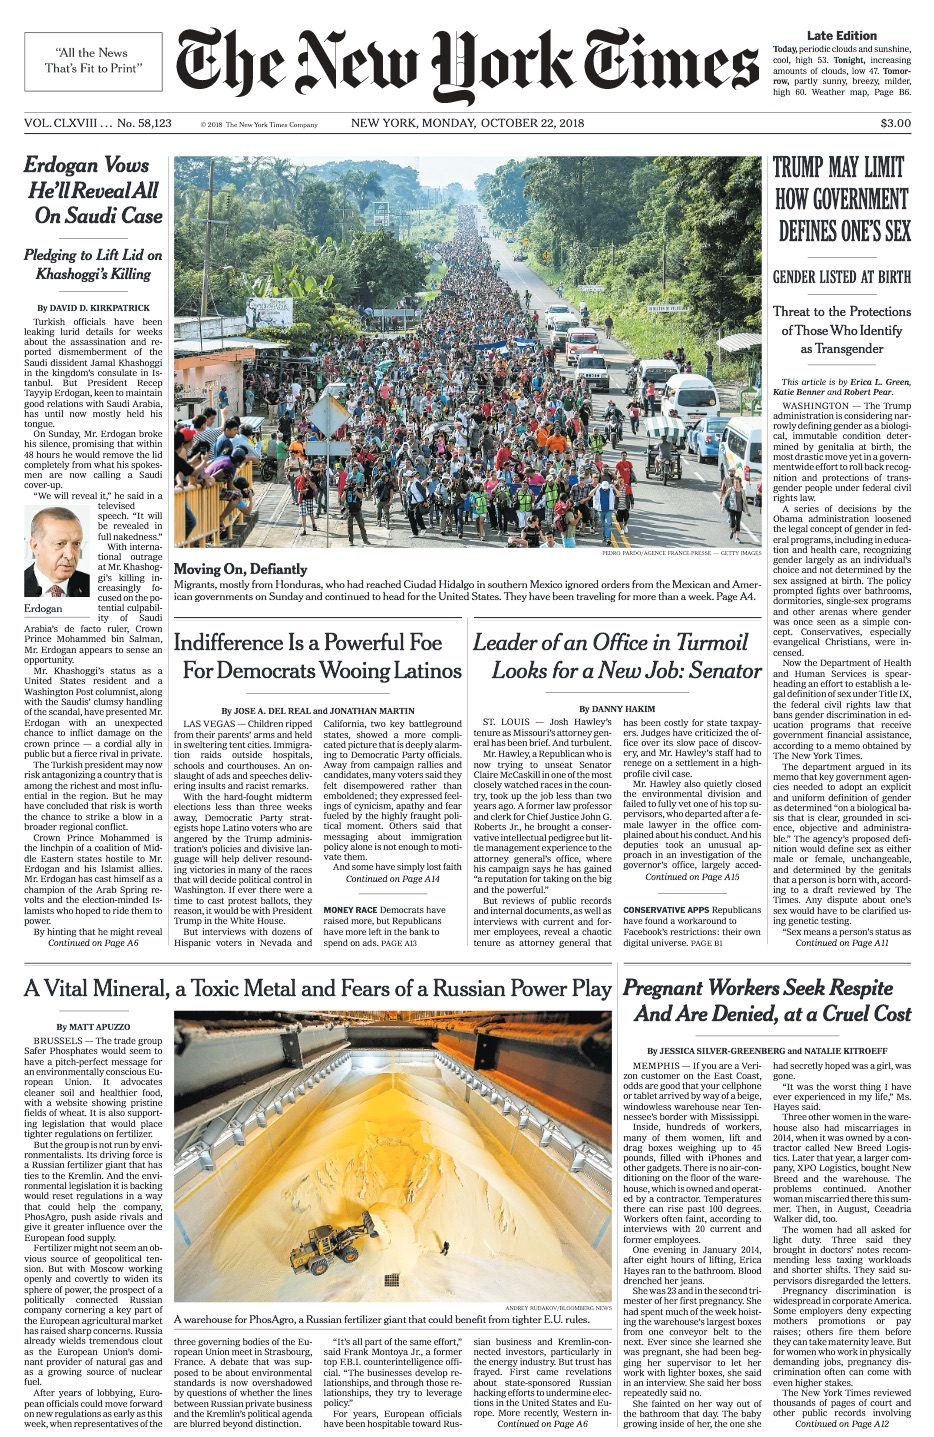 NYT_FrontPage_102218.jpg